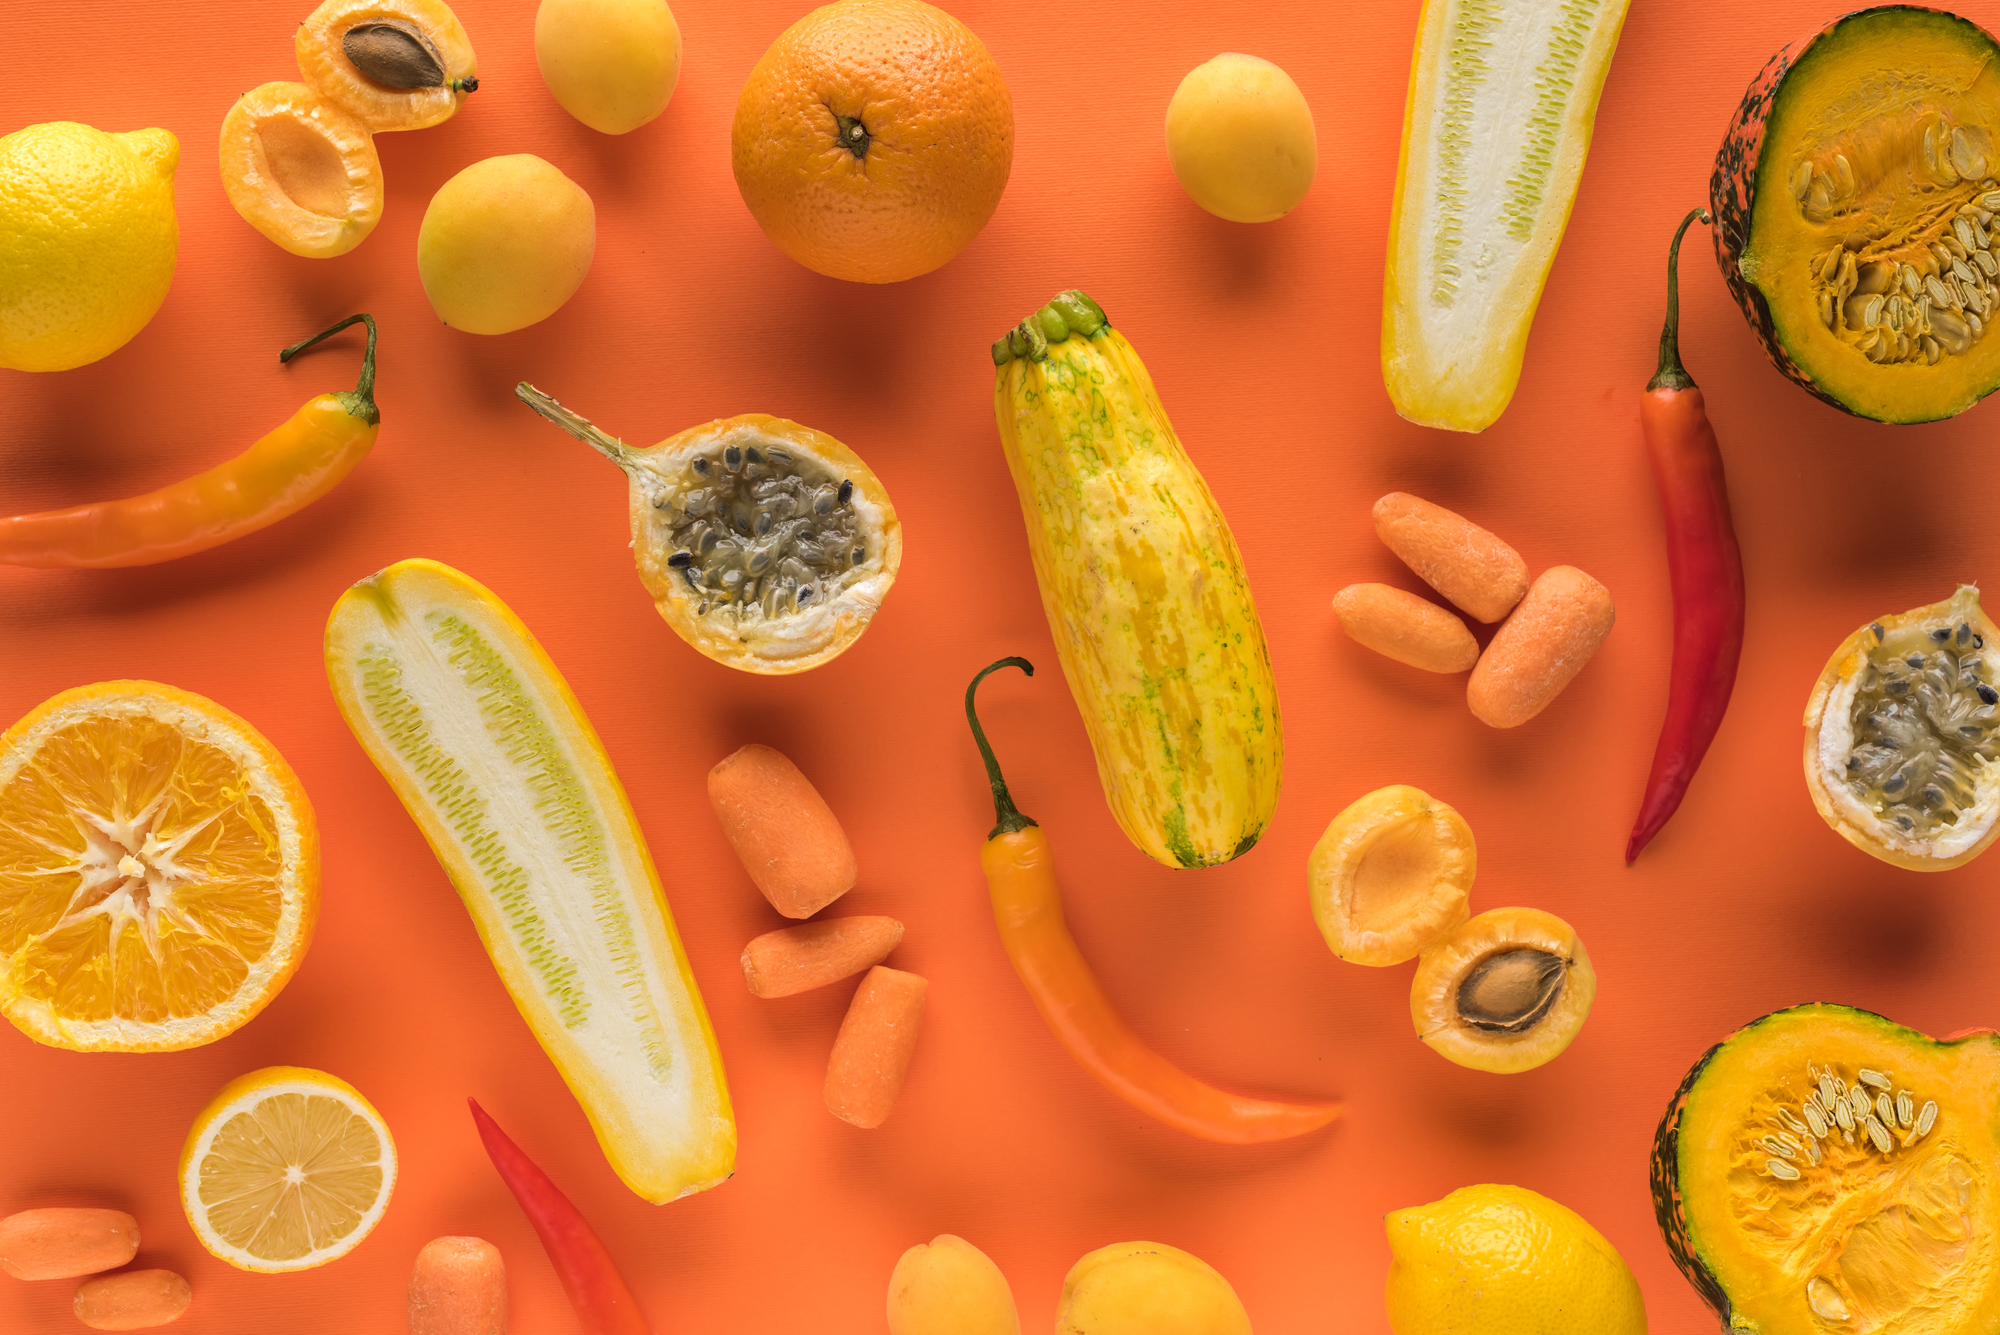 Top view of yellow fruits and vegetables